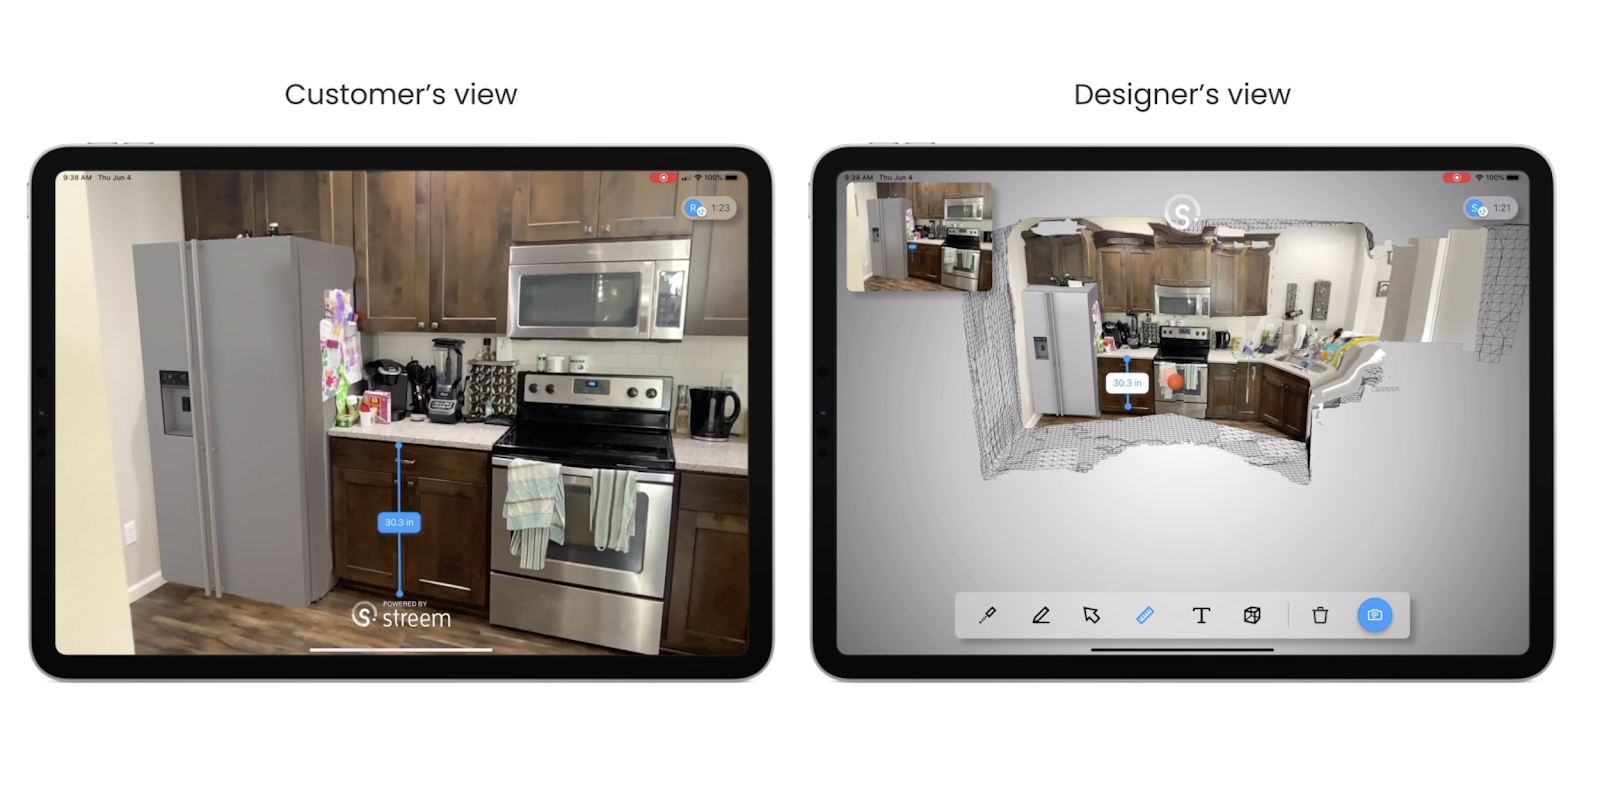 Interactive video use case from the customer's view and designer's view in an iPad